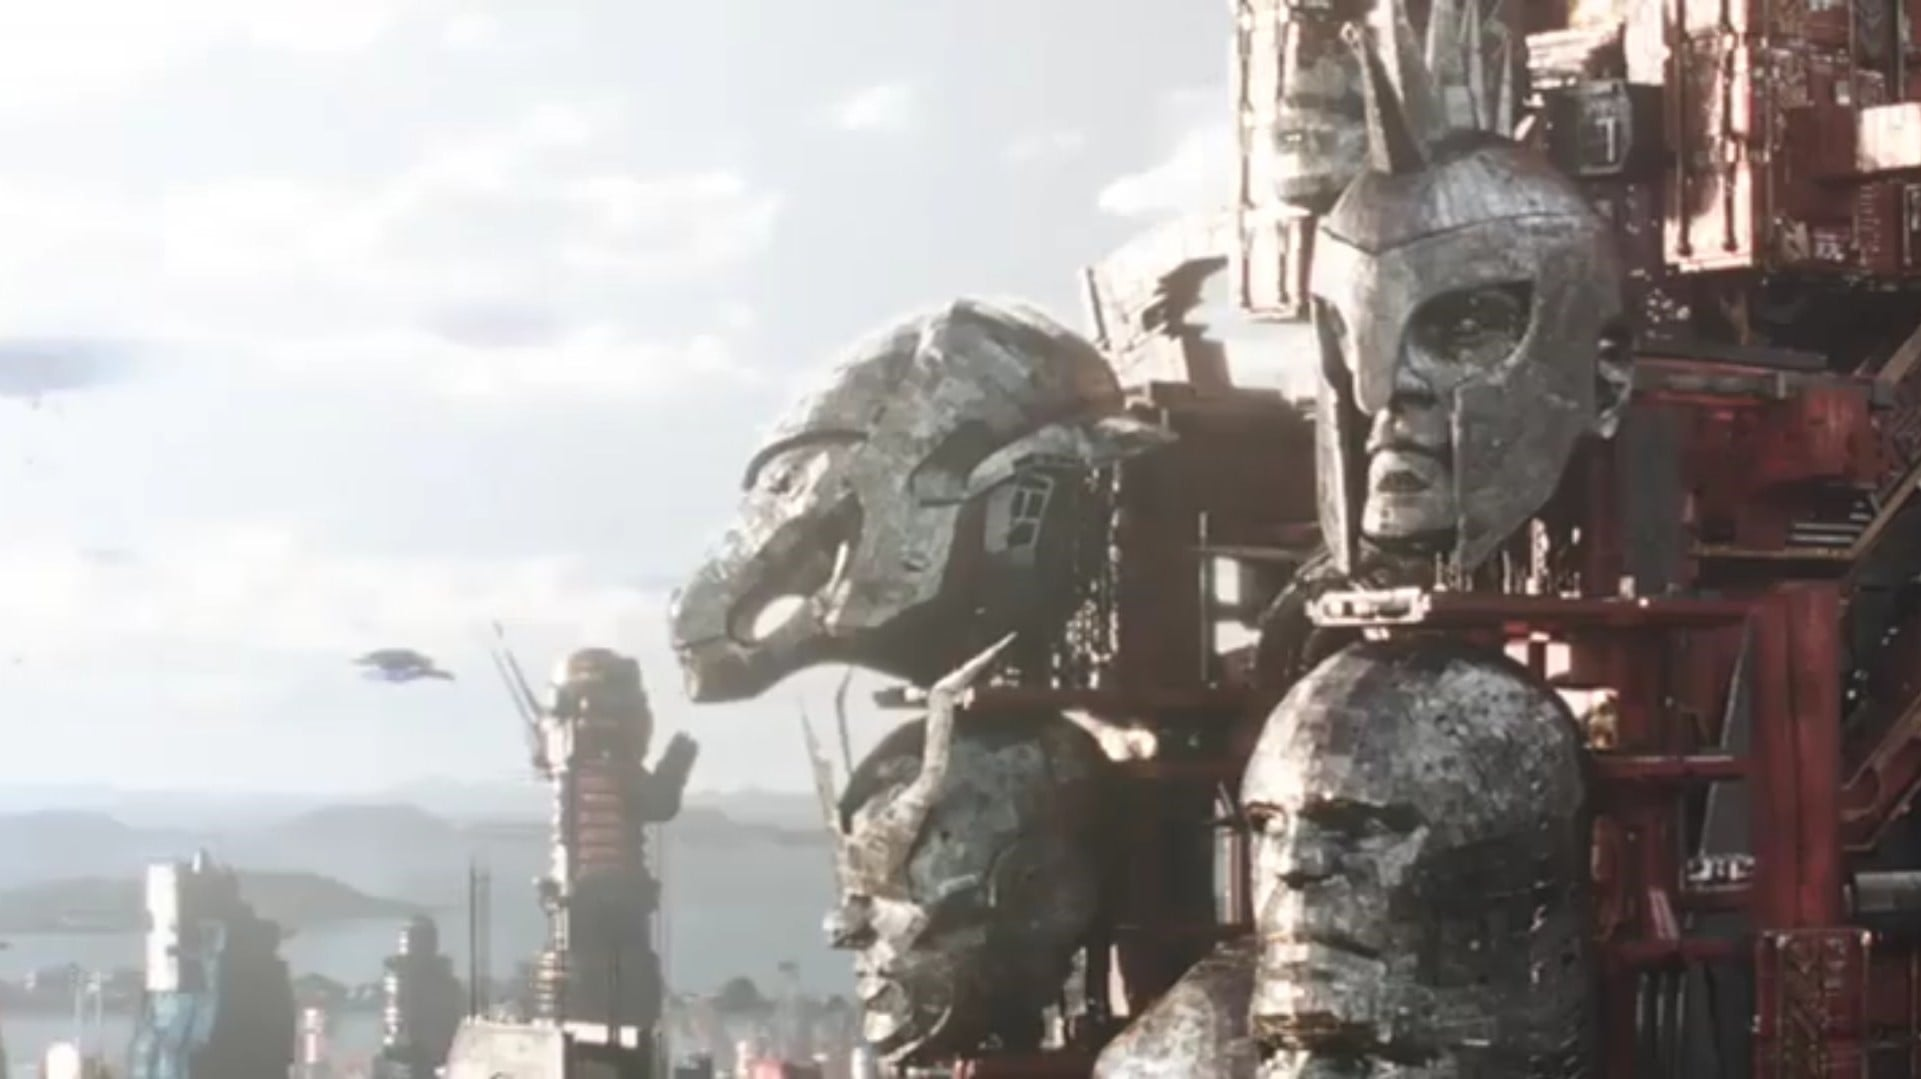 In Thor: Ragnarok, when Beta Ray Bill appears only as a monumental silver head.